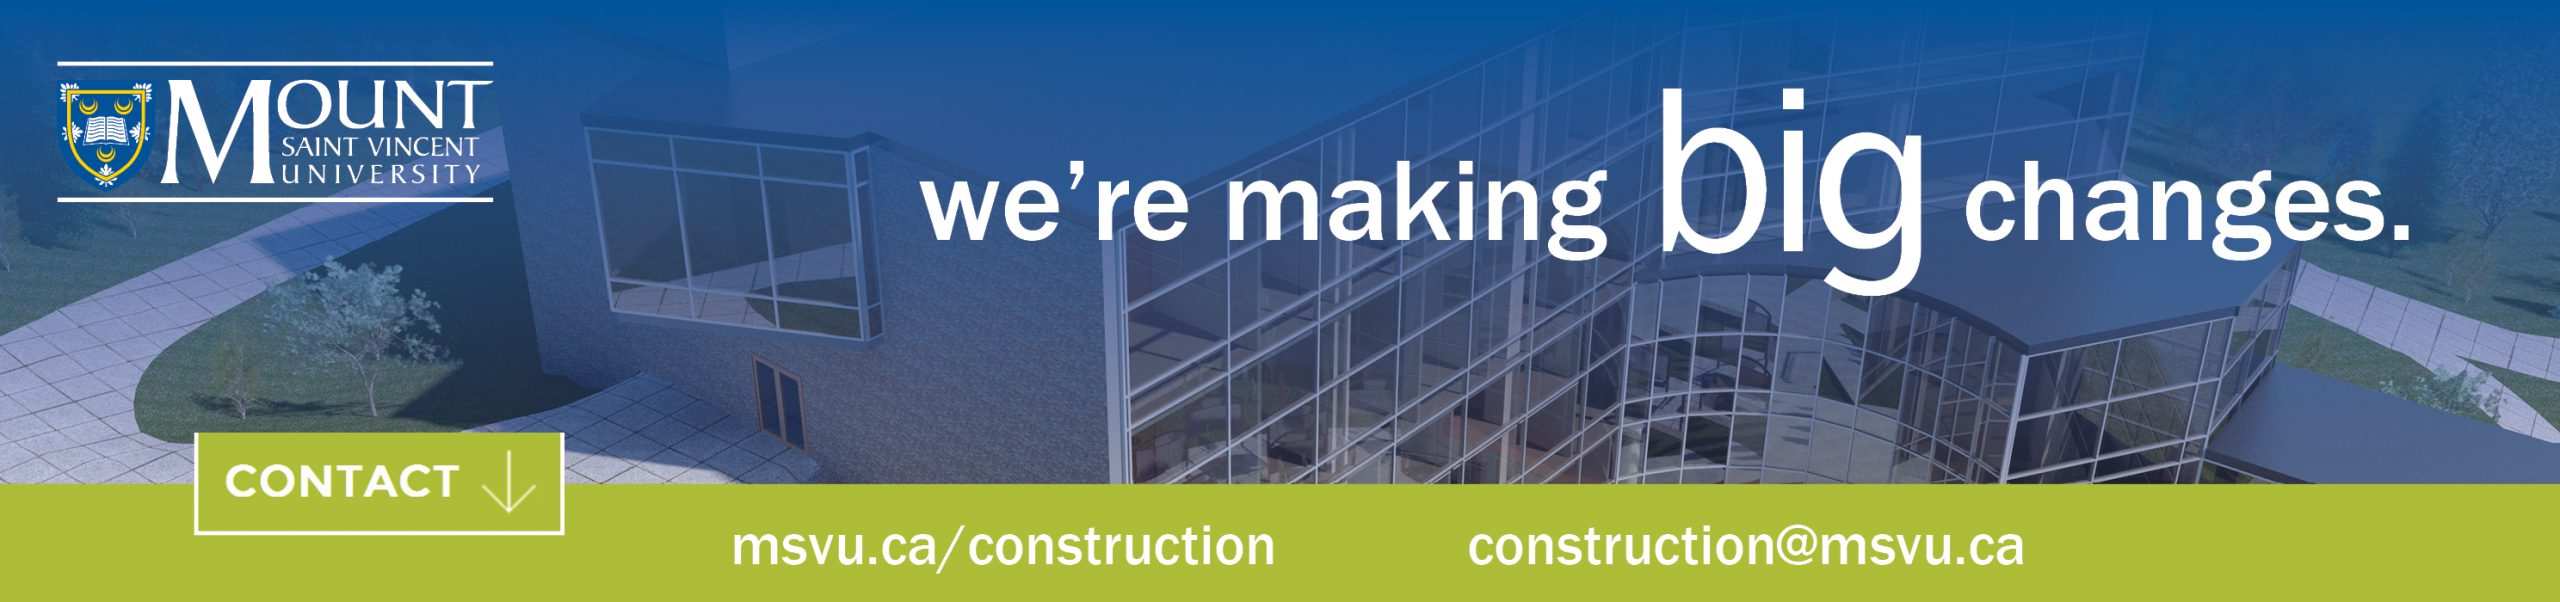 Construction Email Header